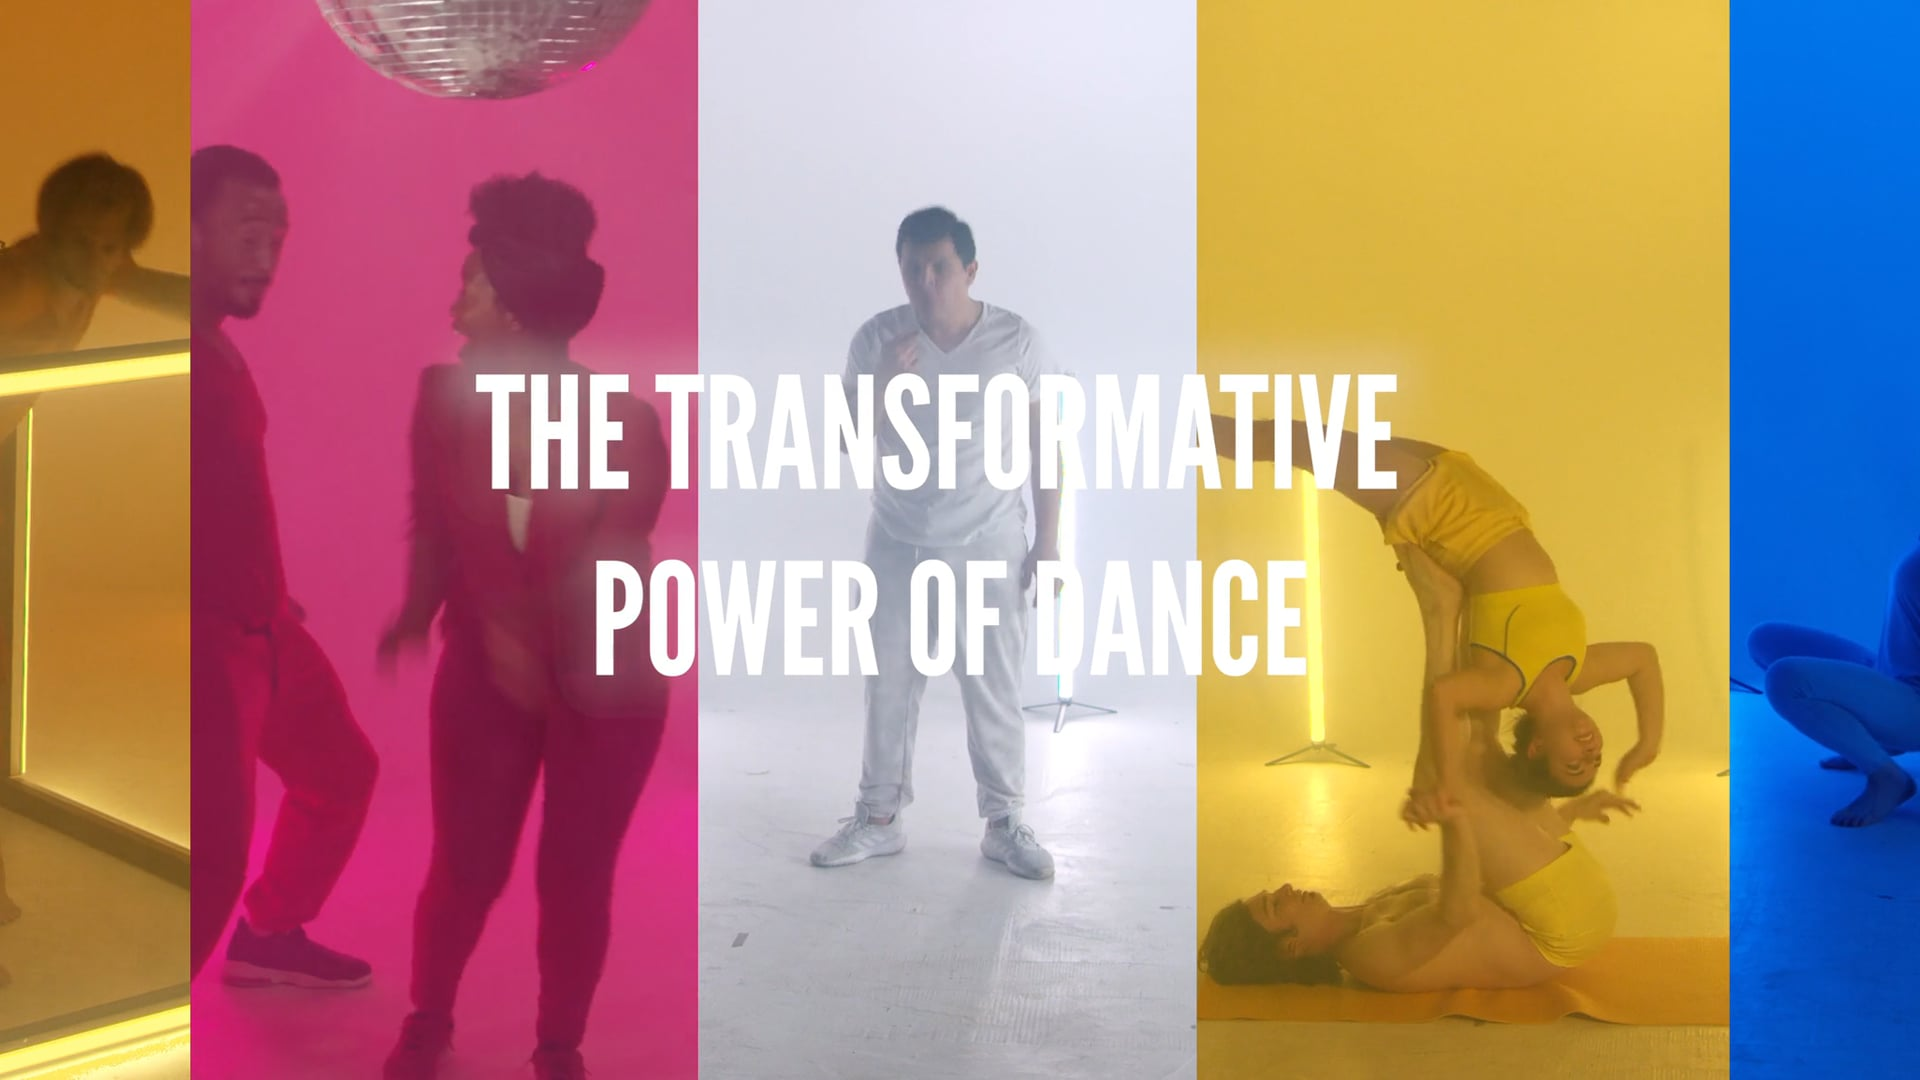 Pones: The Transformative Power of Dance